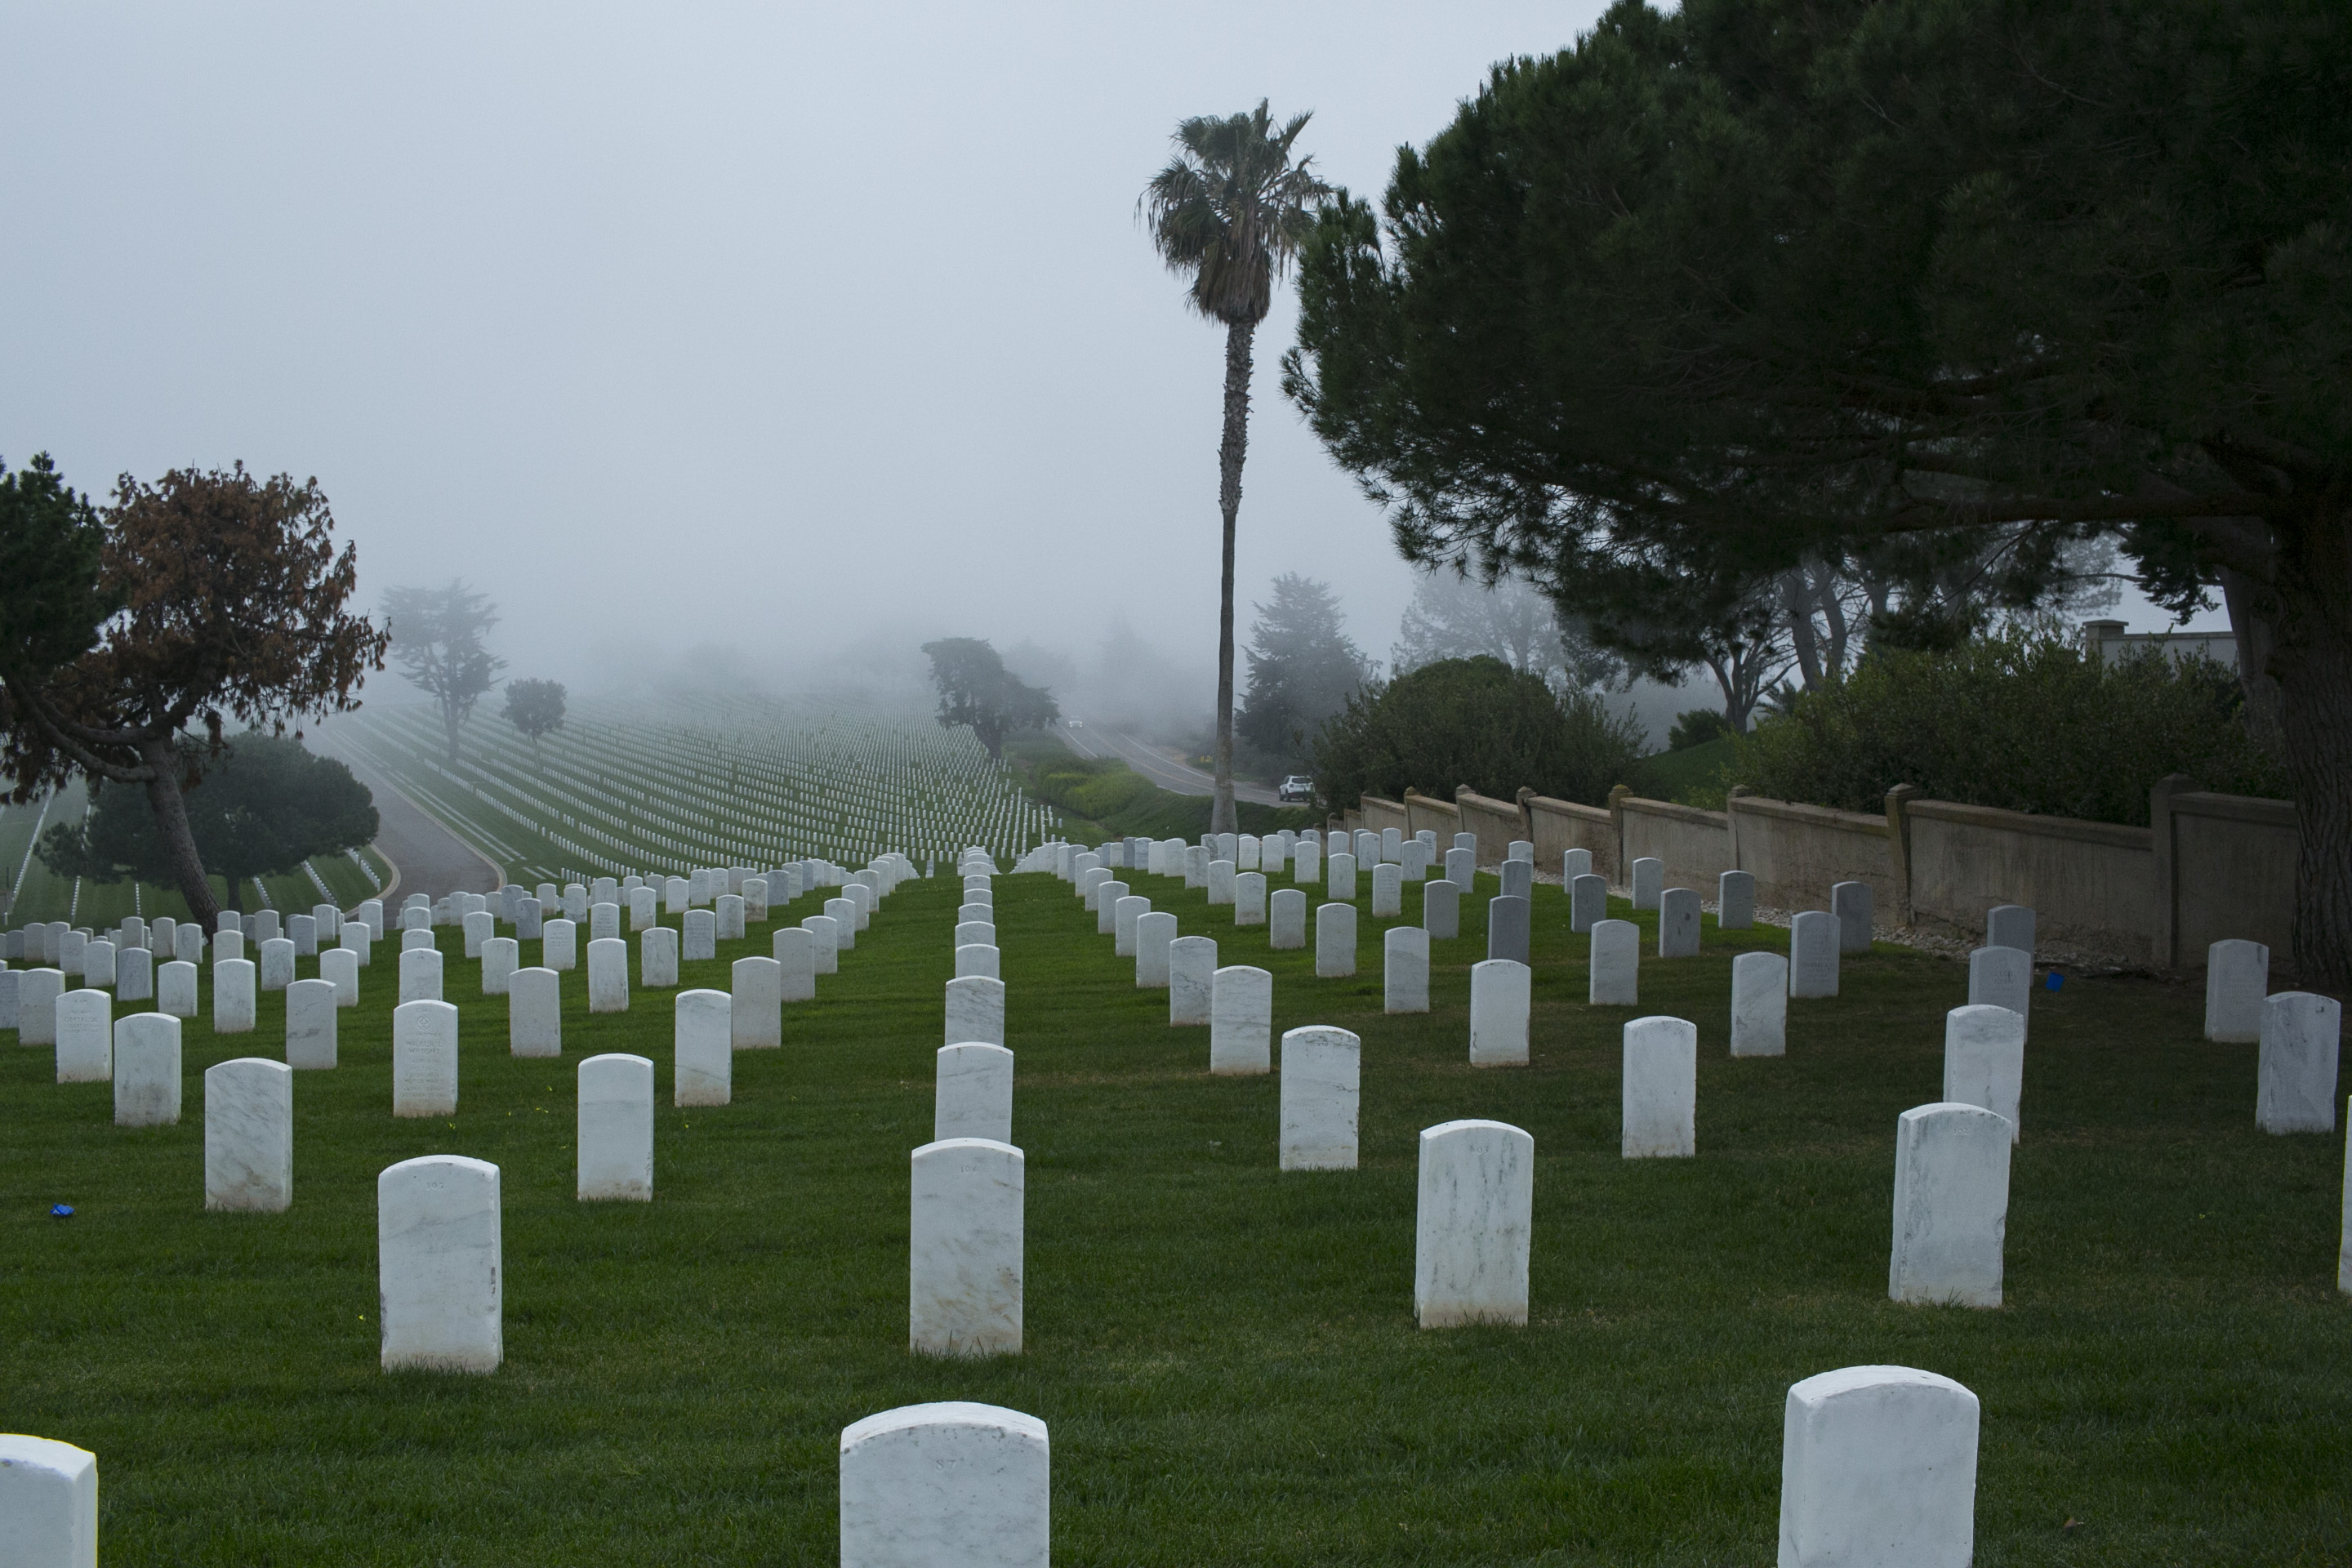 Ft. Rosecrans, Point Loma, San Diego